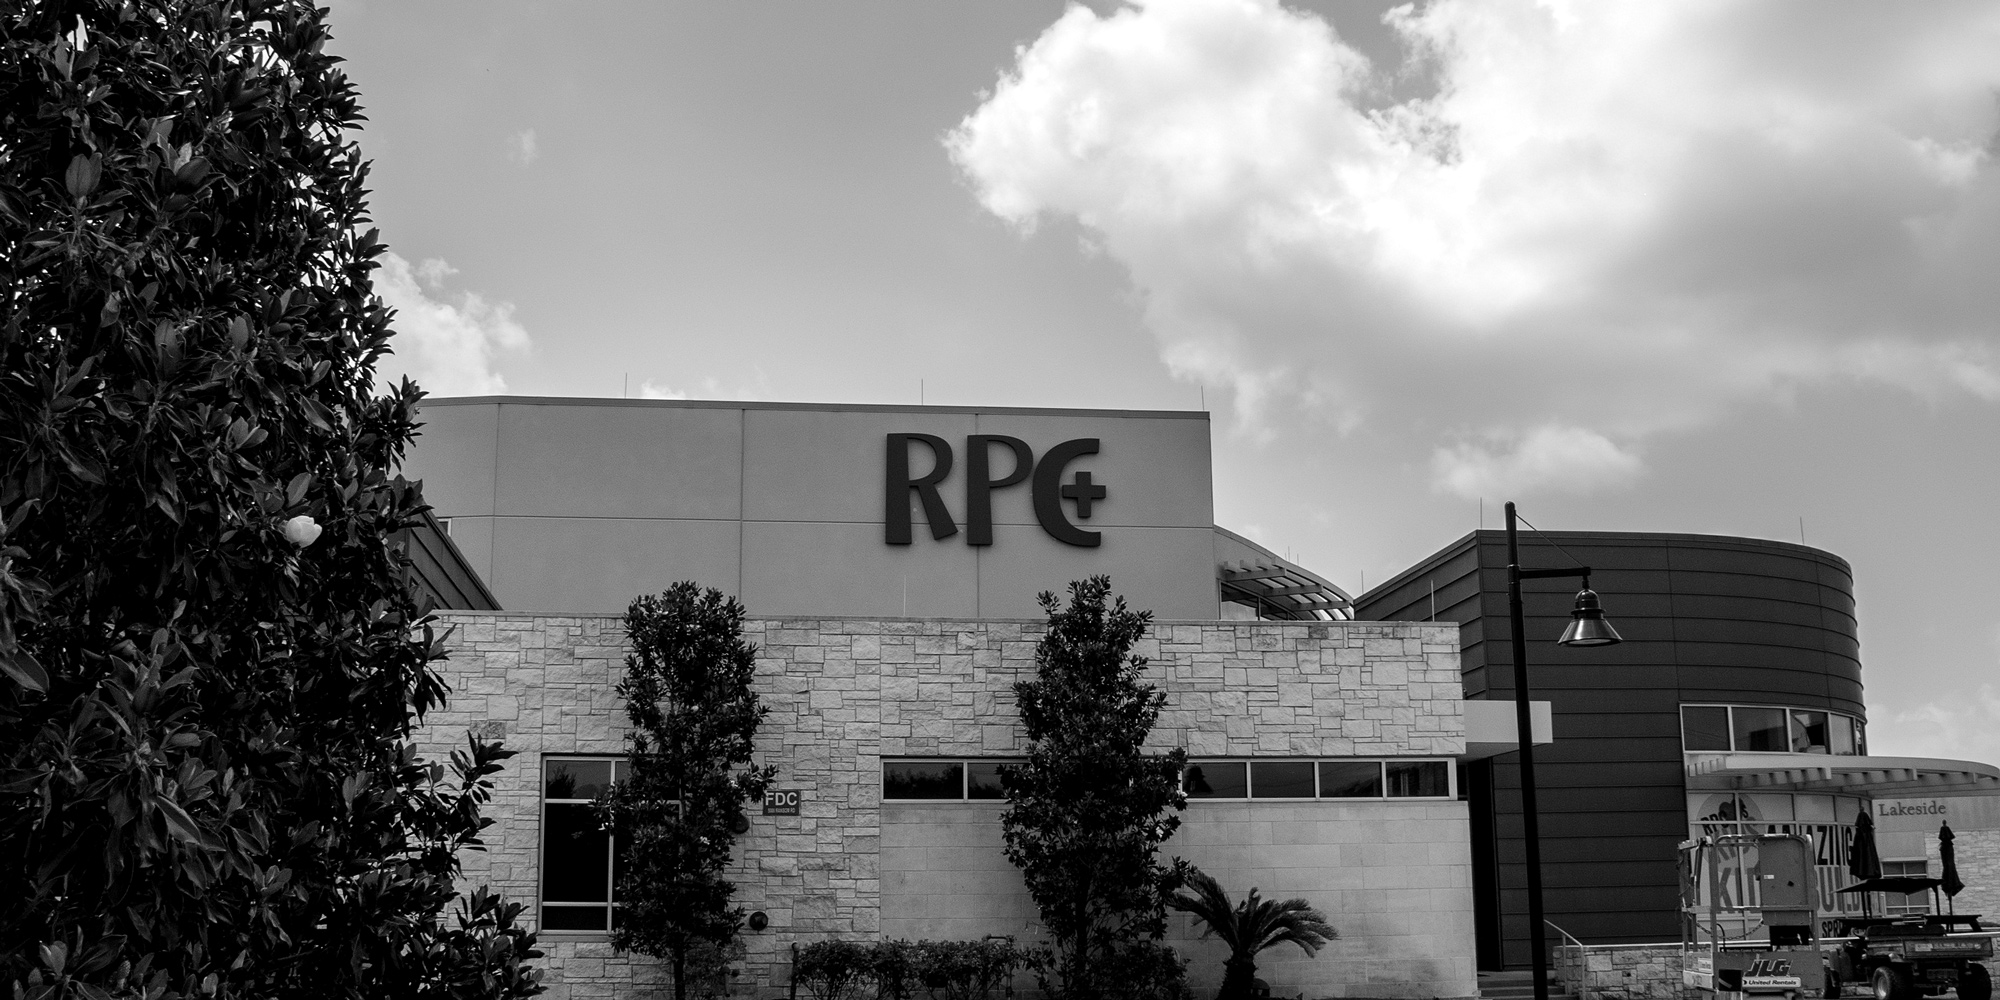 River Pointe Church large format halo-illuminated channel letters mounted to building